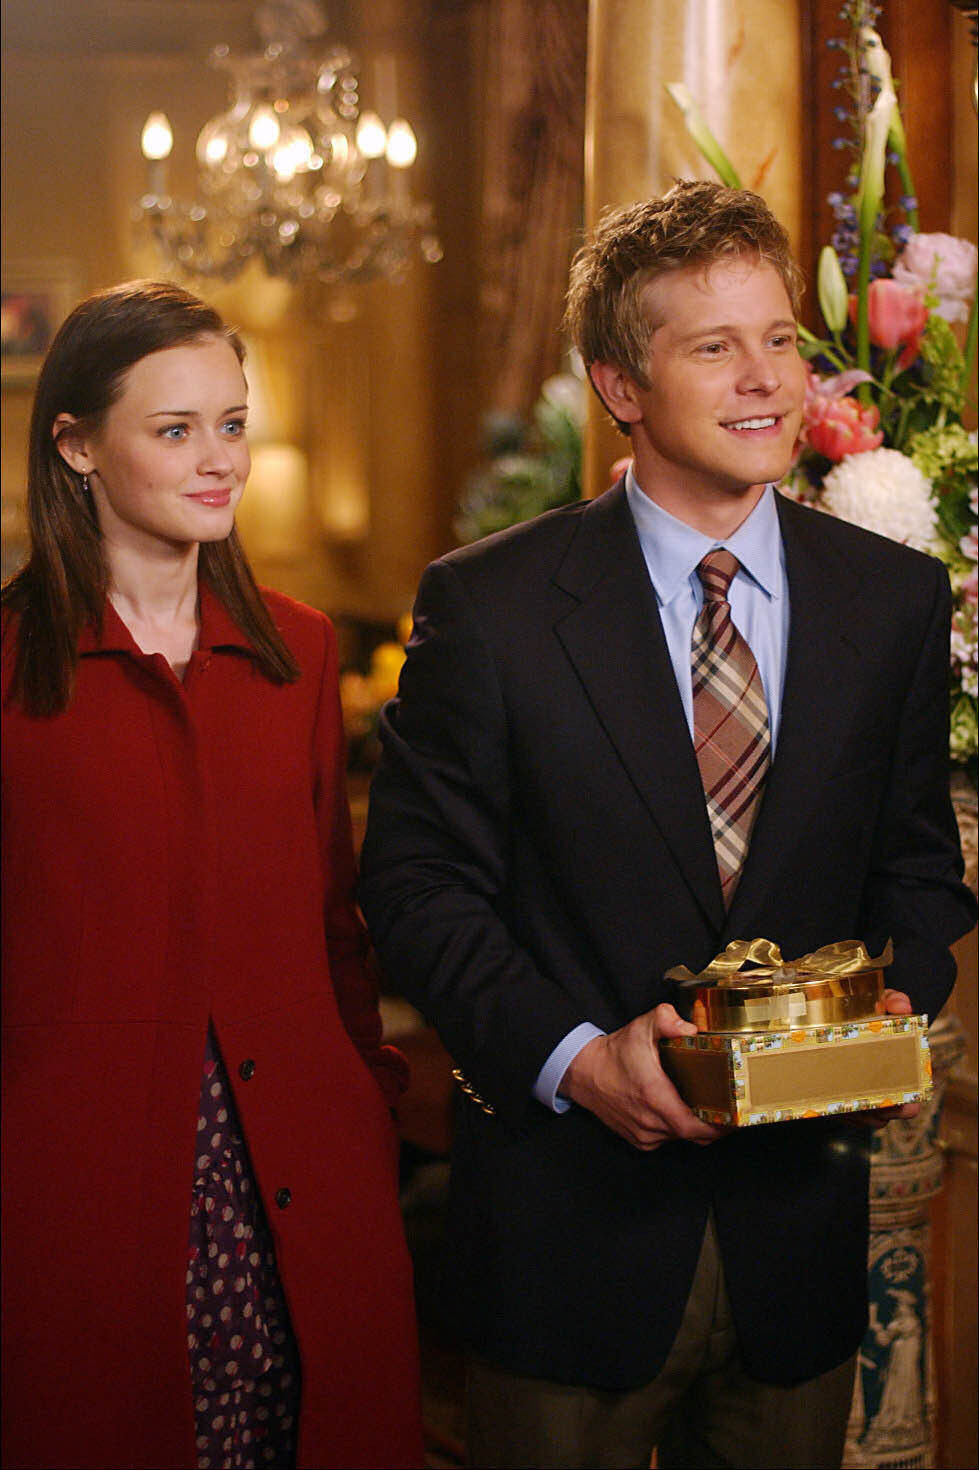 Gilmore Girls A Year In The Life Wallpaper Rory And Logan Rory And Logan Photo 2325330 Fanpop